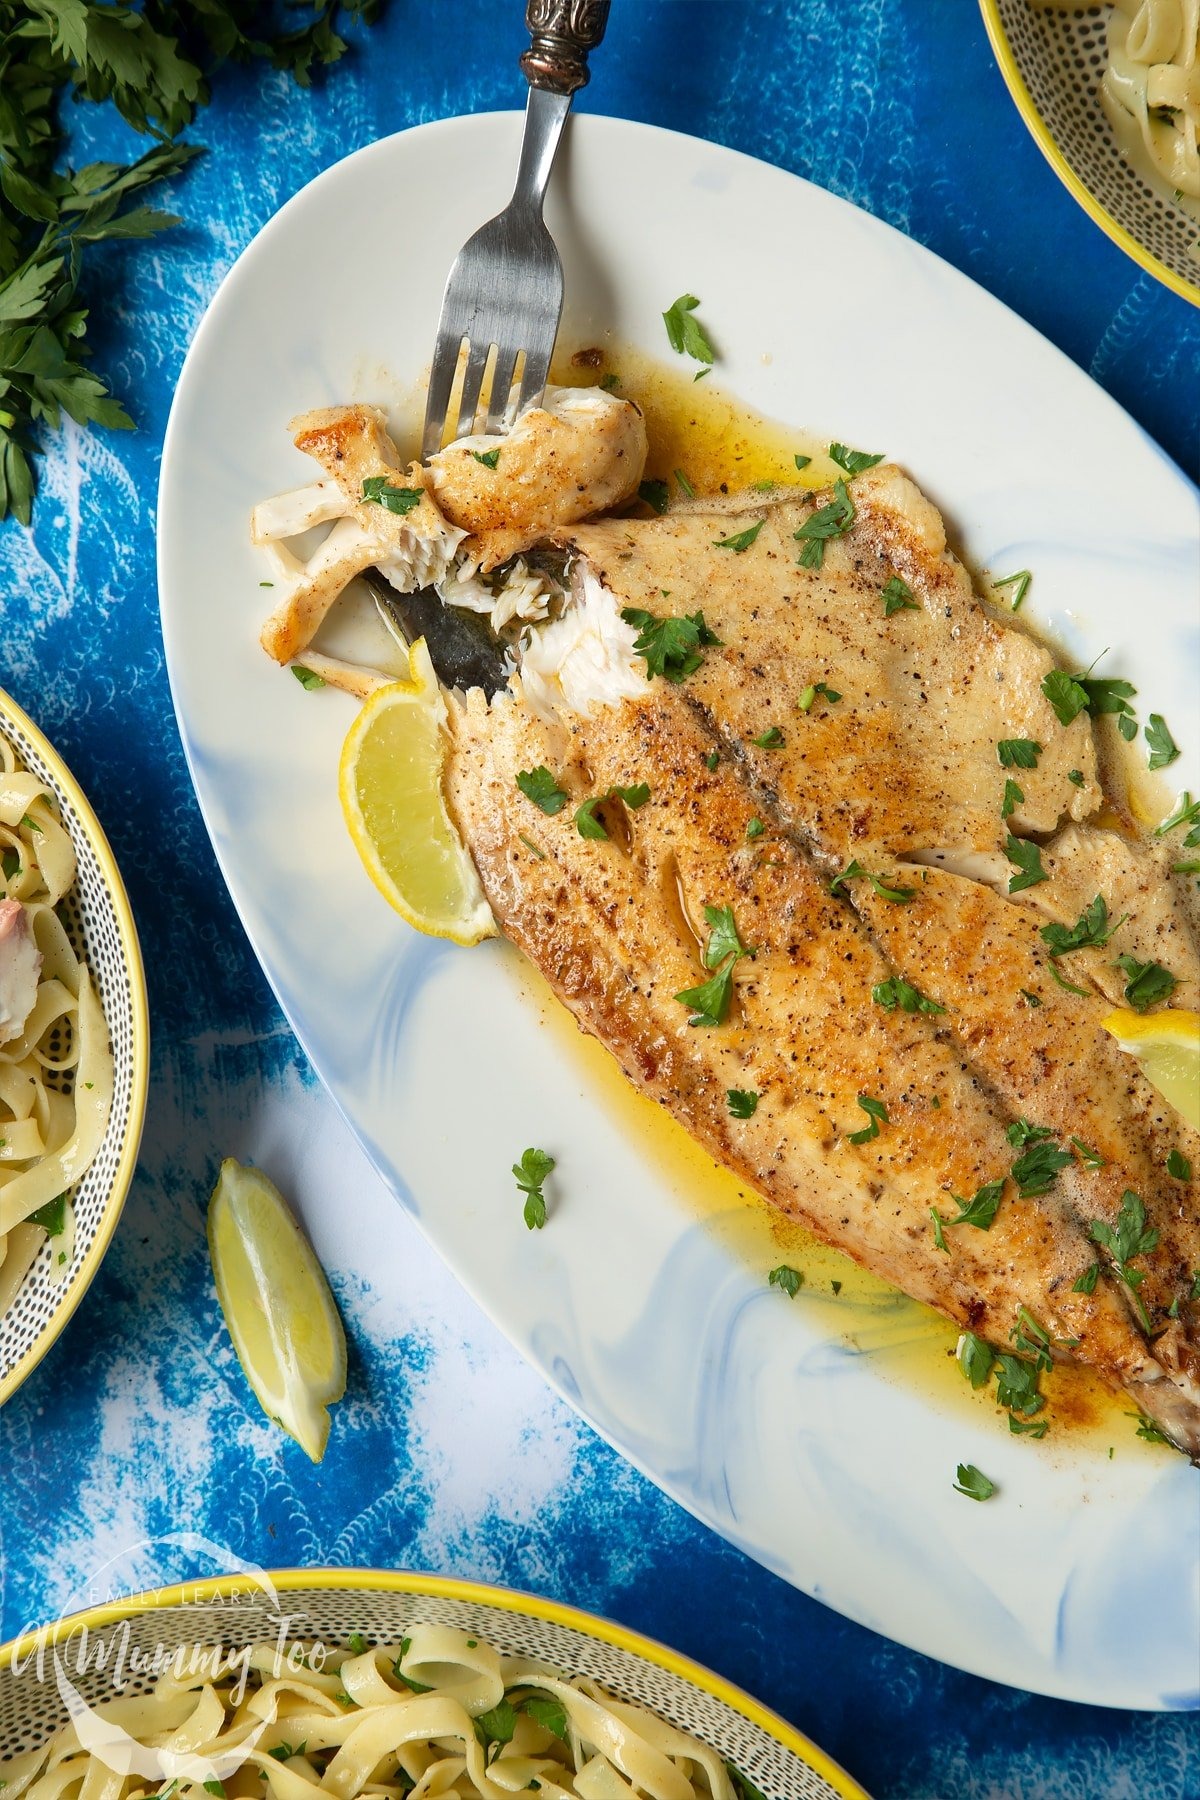 Pan-fried Yellowtail on a large oval serving dish. A fork delves into the buttery fish.